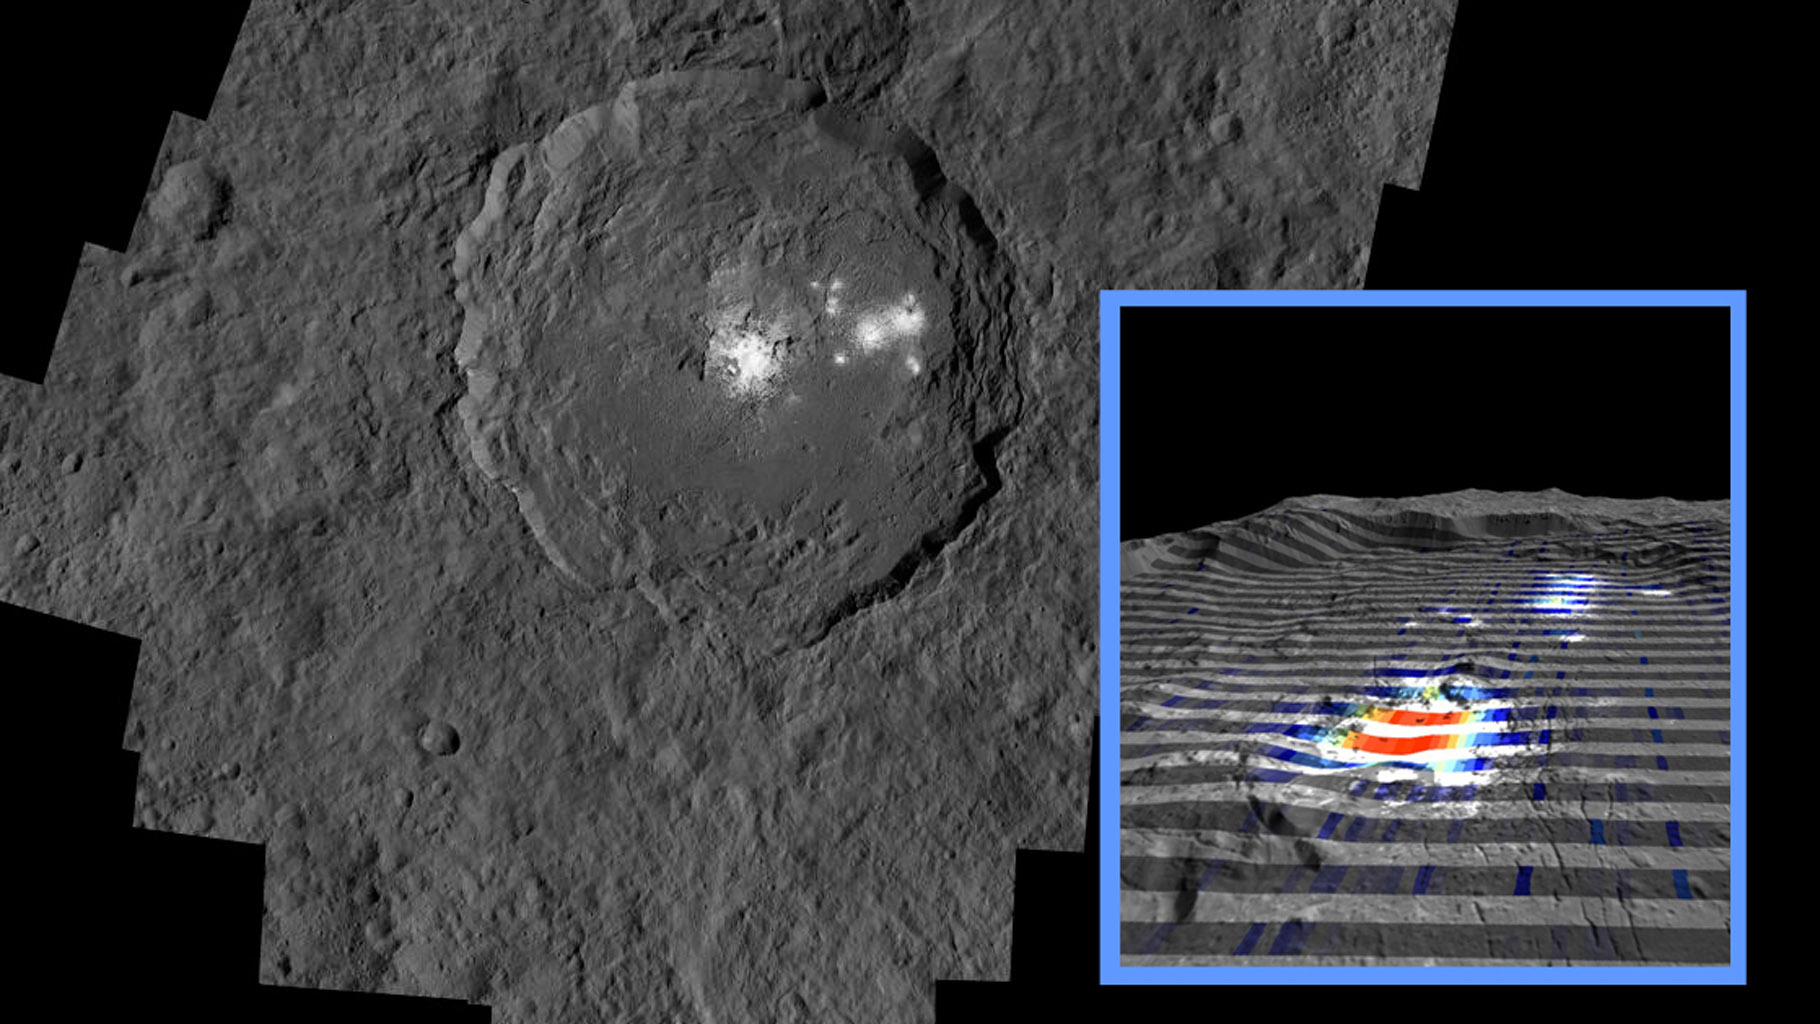 The center of Ceres' mysterious Occator Crater is the brightest area on the dwarf planet. The inset perspective view is overlaid with data concerning the composition of this feature: Red signifies a high abundance of carbonates, while gray indicates a low carbonate abundance.